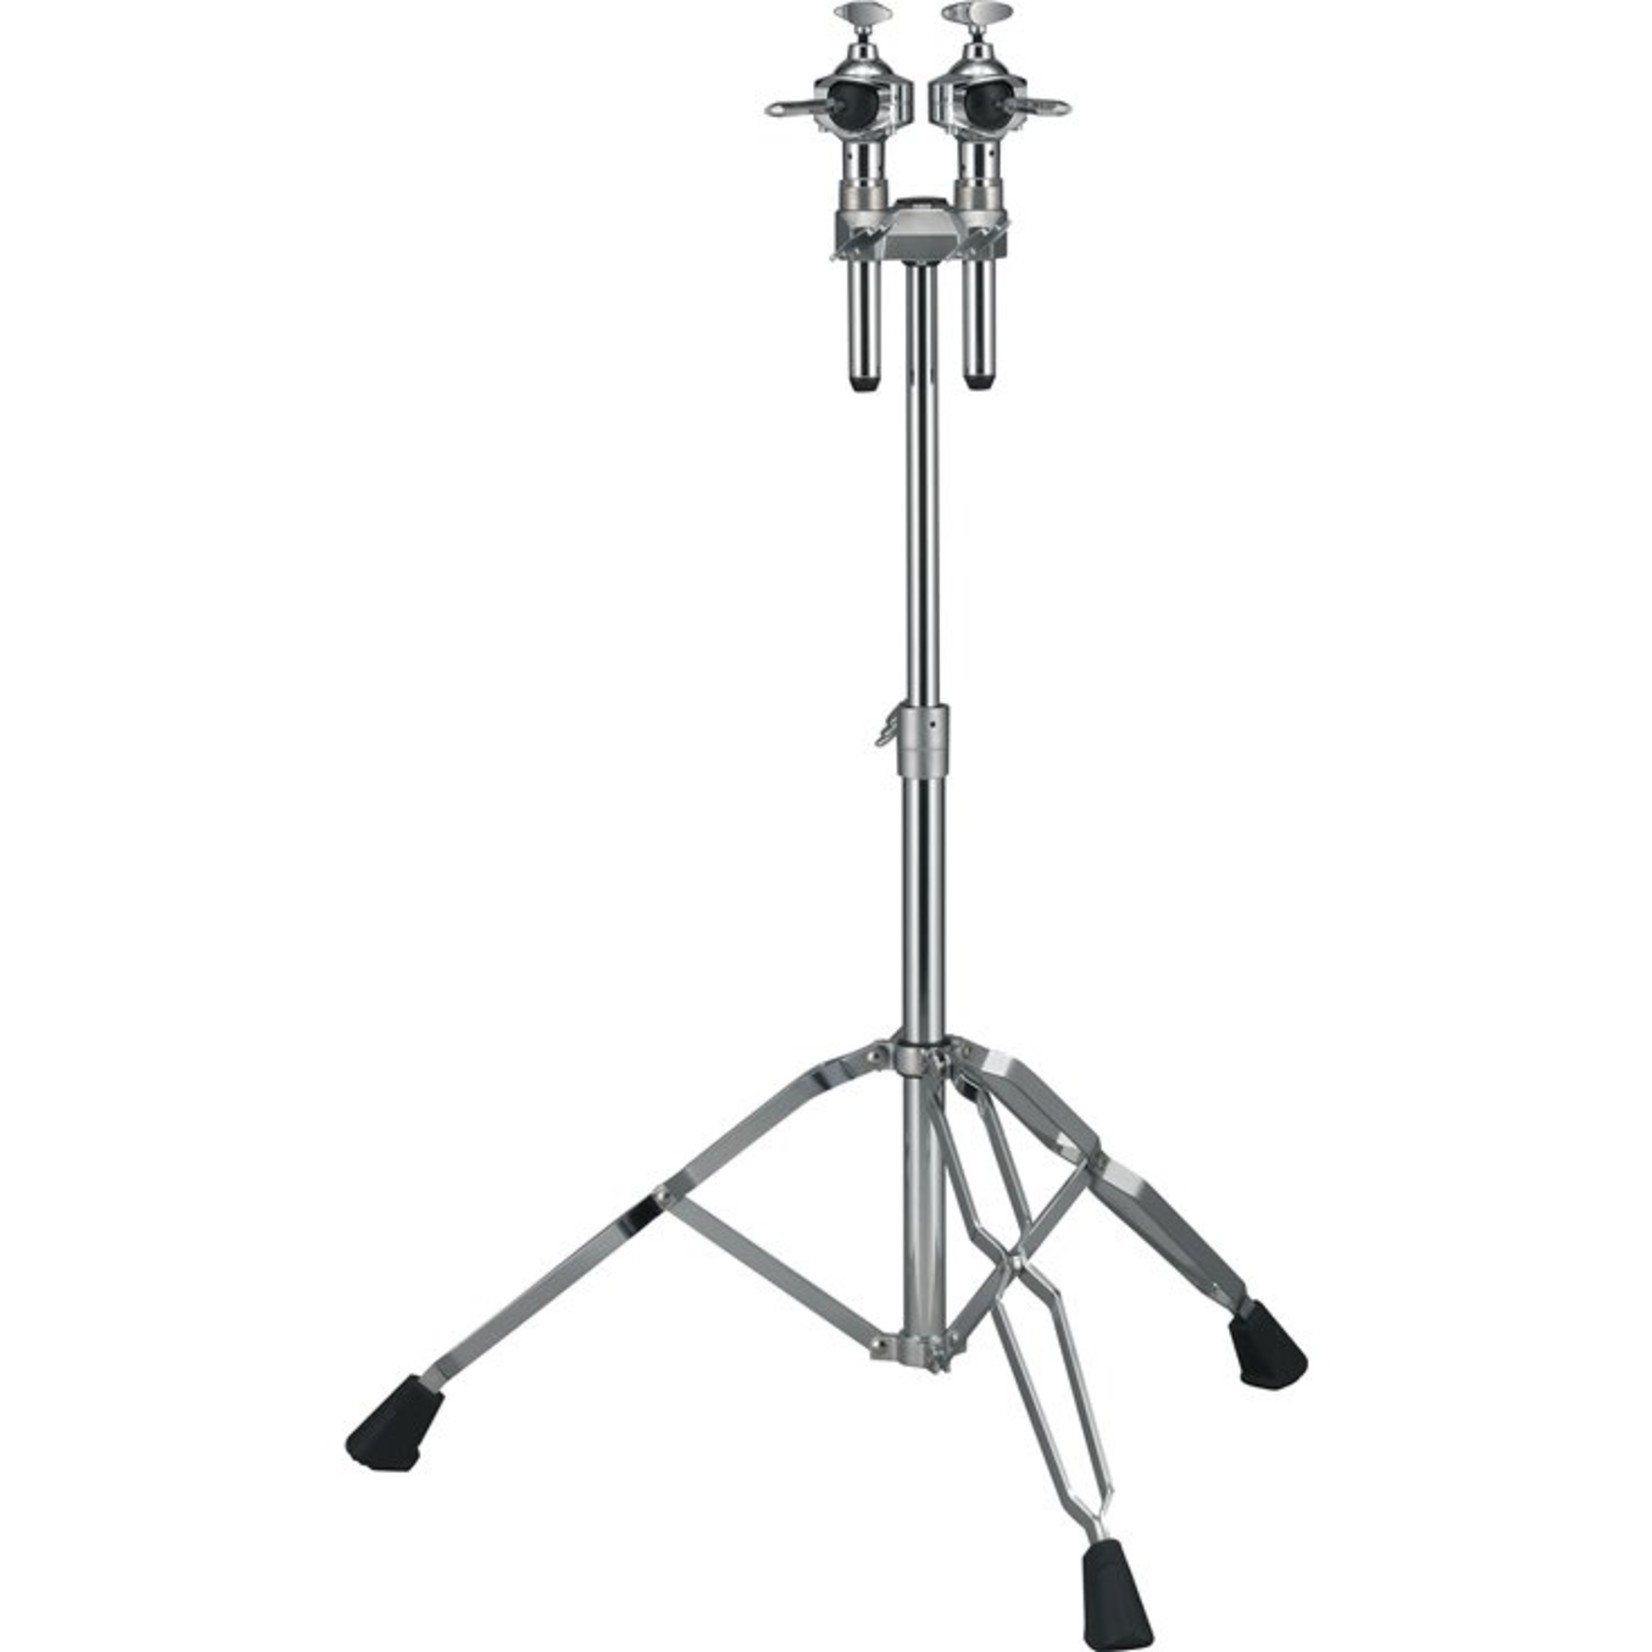 Yamaha Yamaha Double Tom Stands - Heavy Weight - Double Braced - Included CL-945B (2)